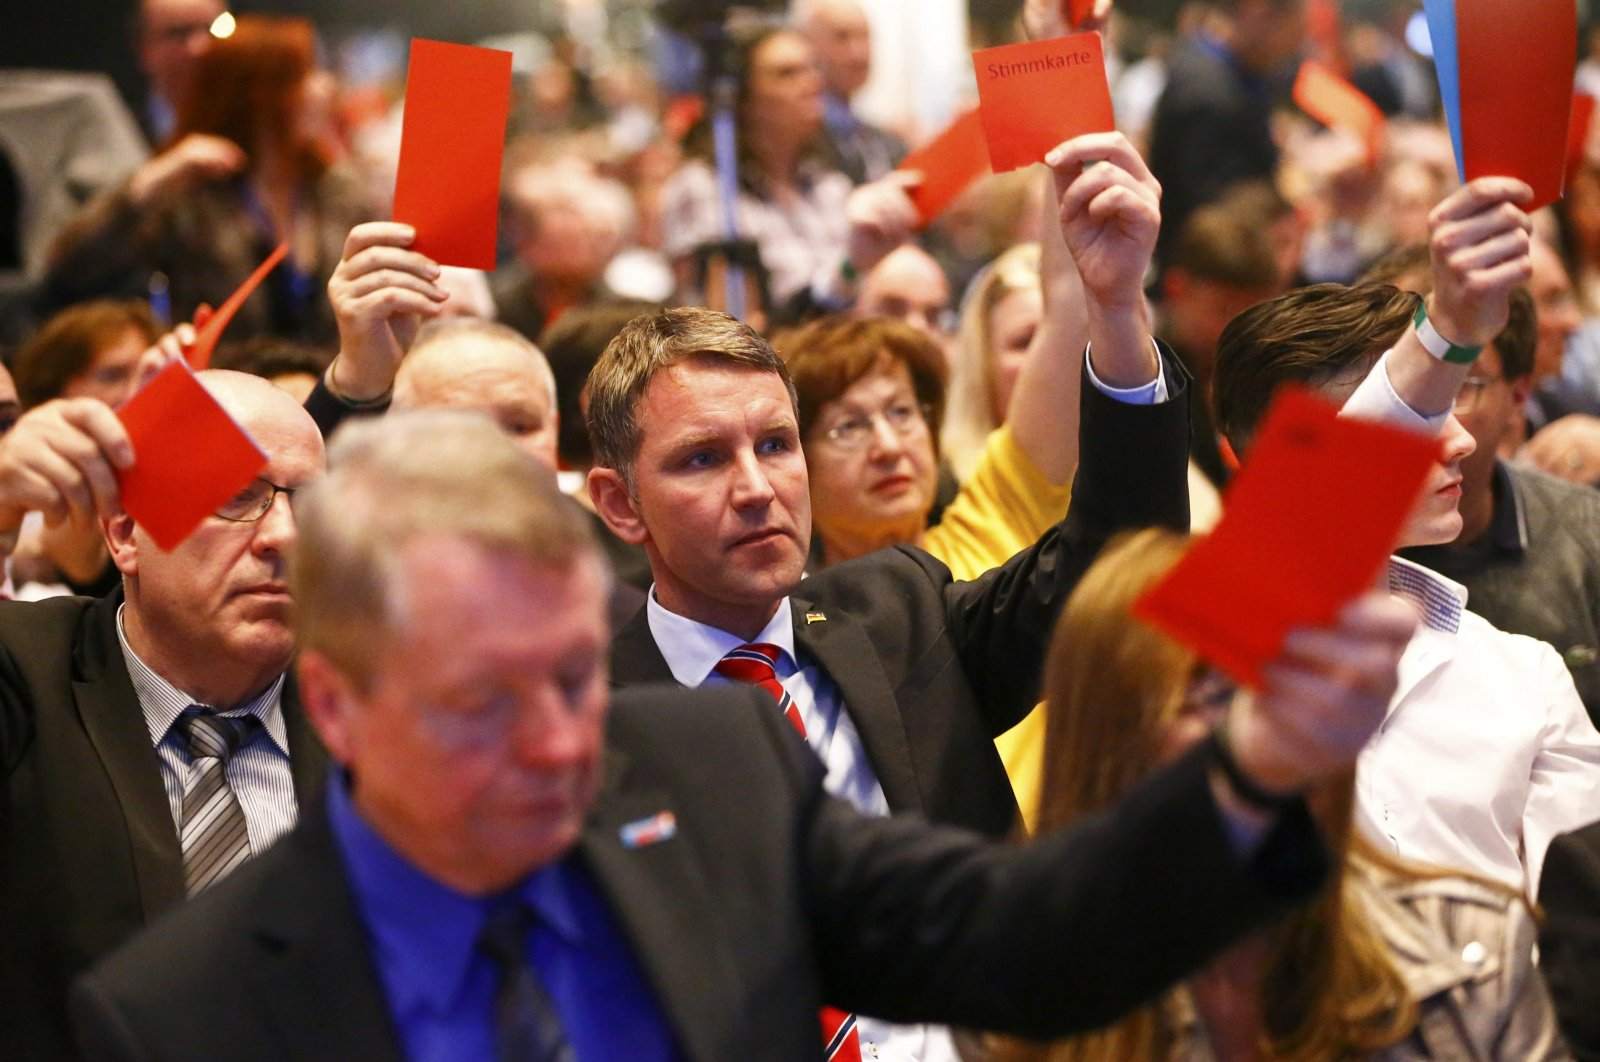 Bjoern Hoecke (C) of the anti-immigration party Alternative for Germany (AfD) party, votes during the AfD congress in Stuttgart, Germany, April 30, 2016. (Reuters Photo)